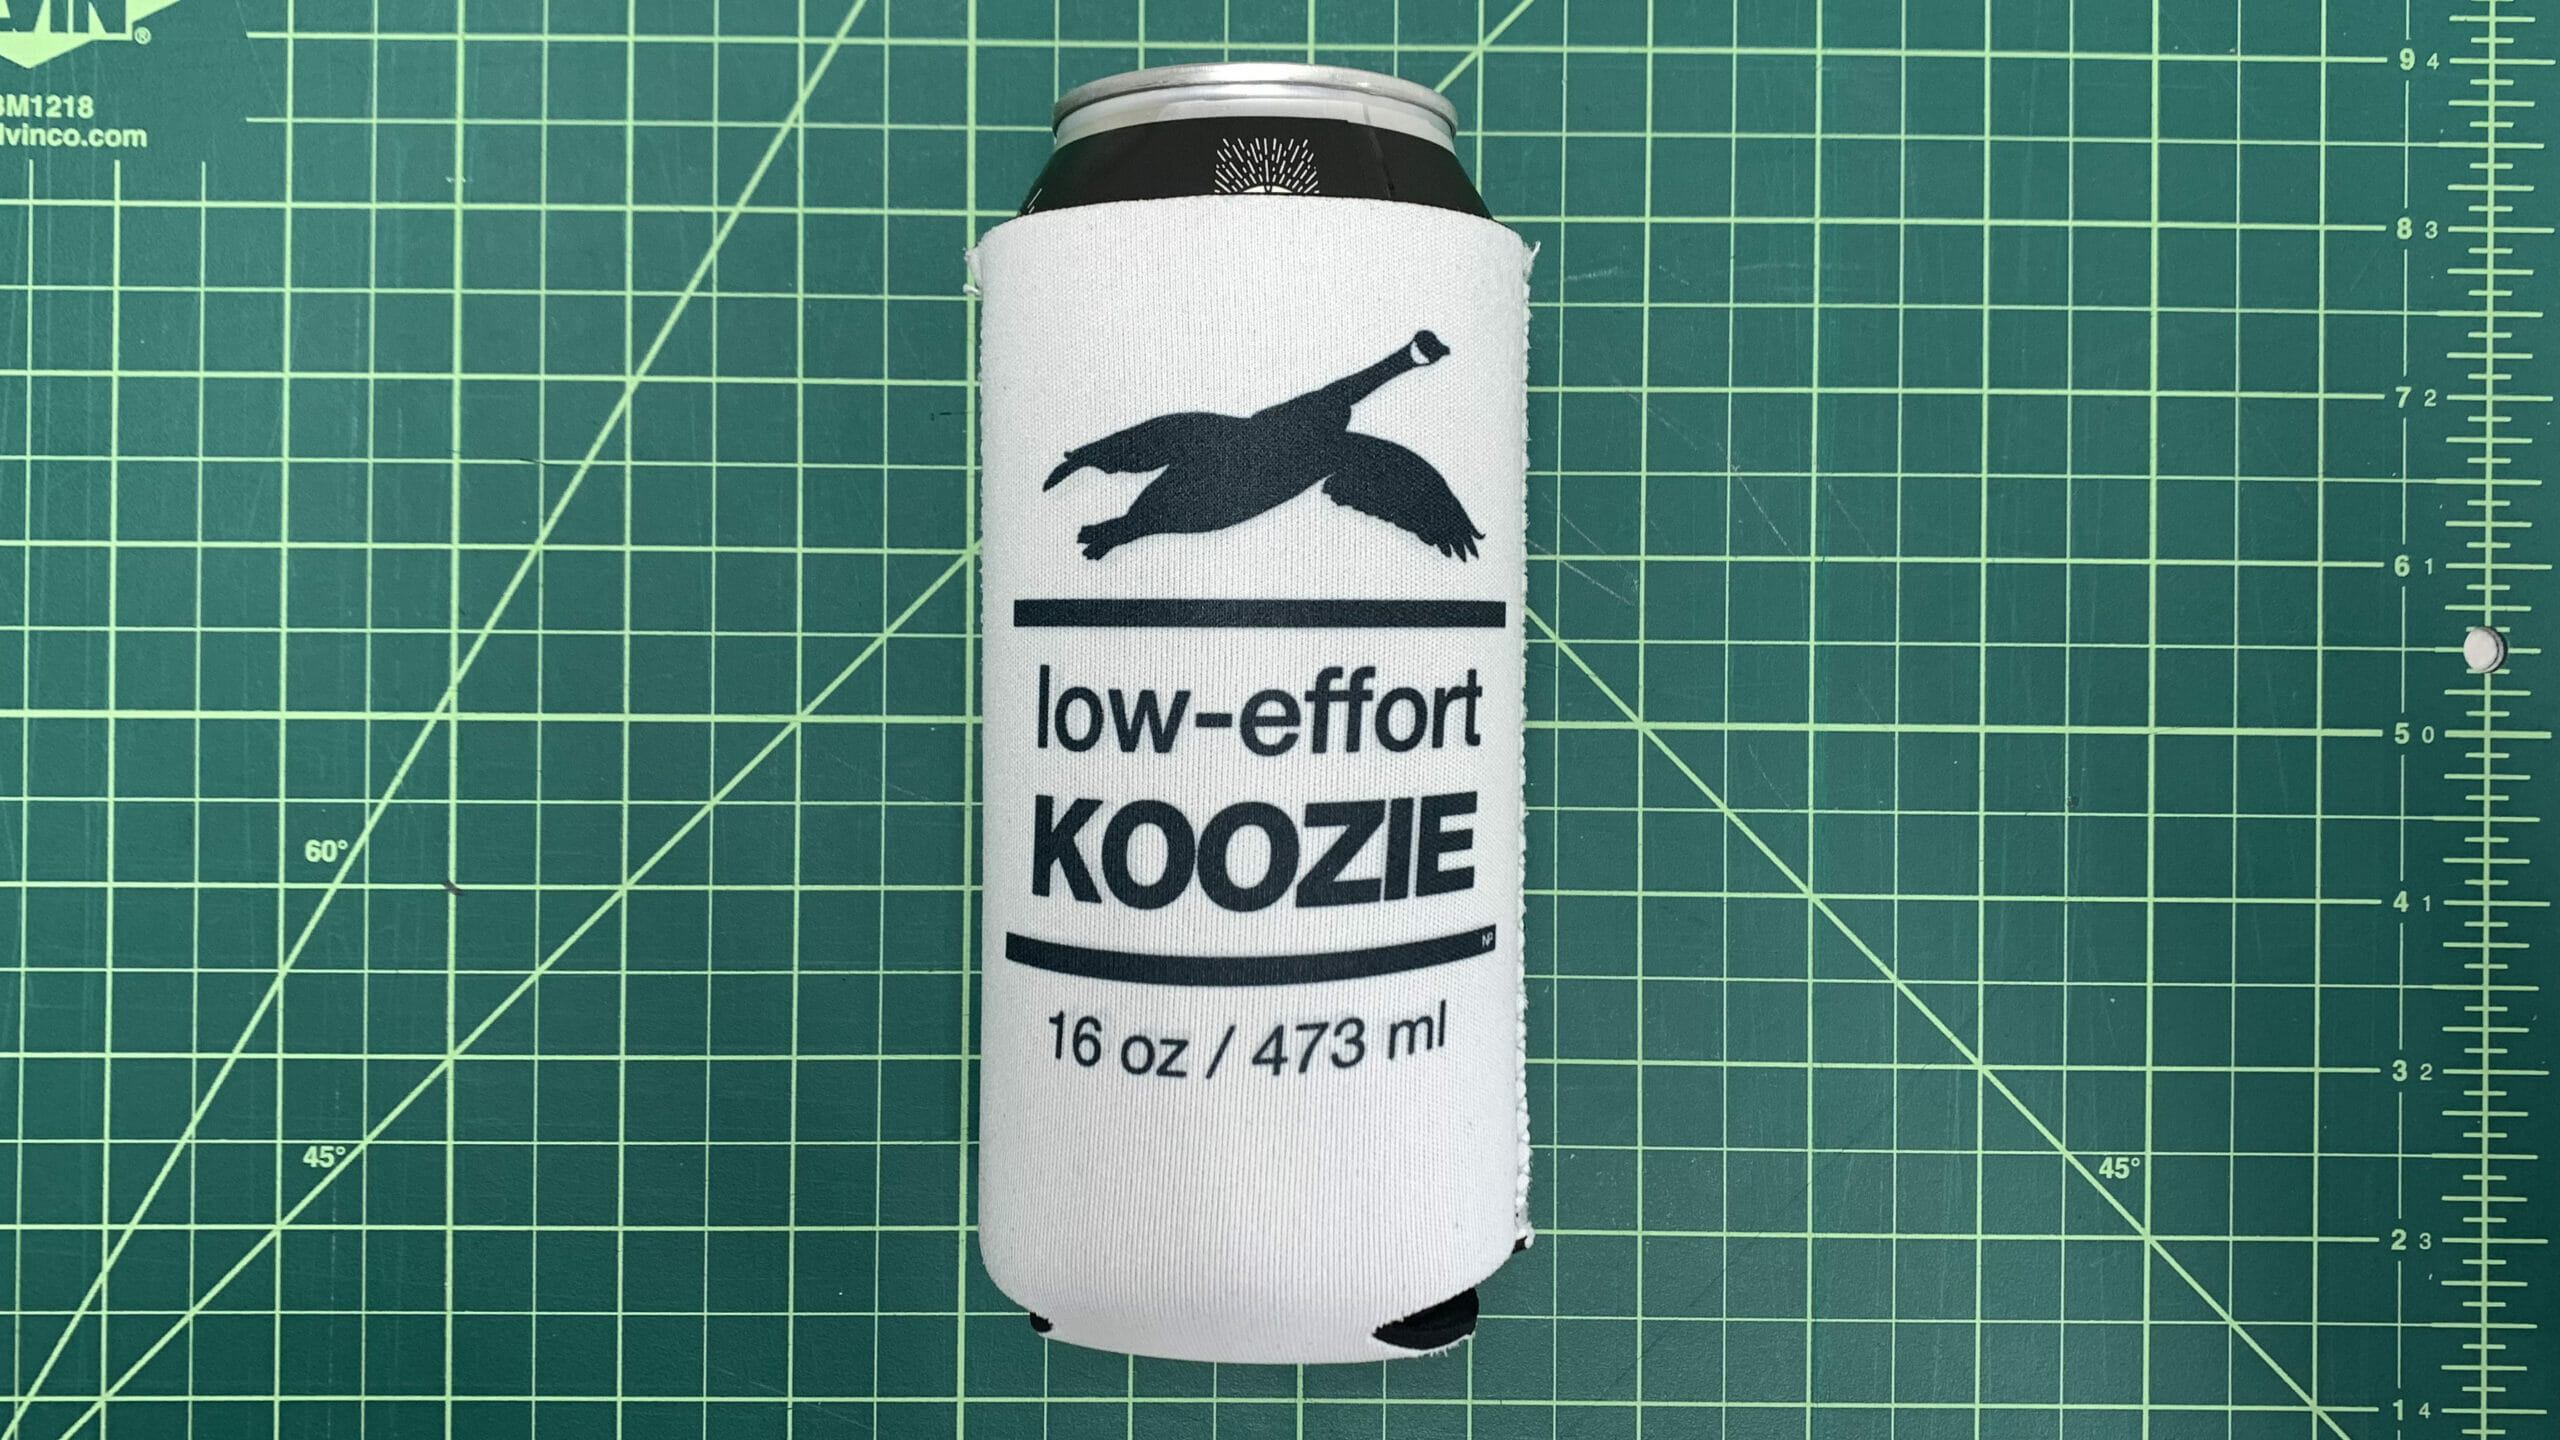 16oz Low effort koozie - on can - 16x9